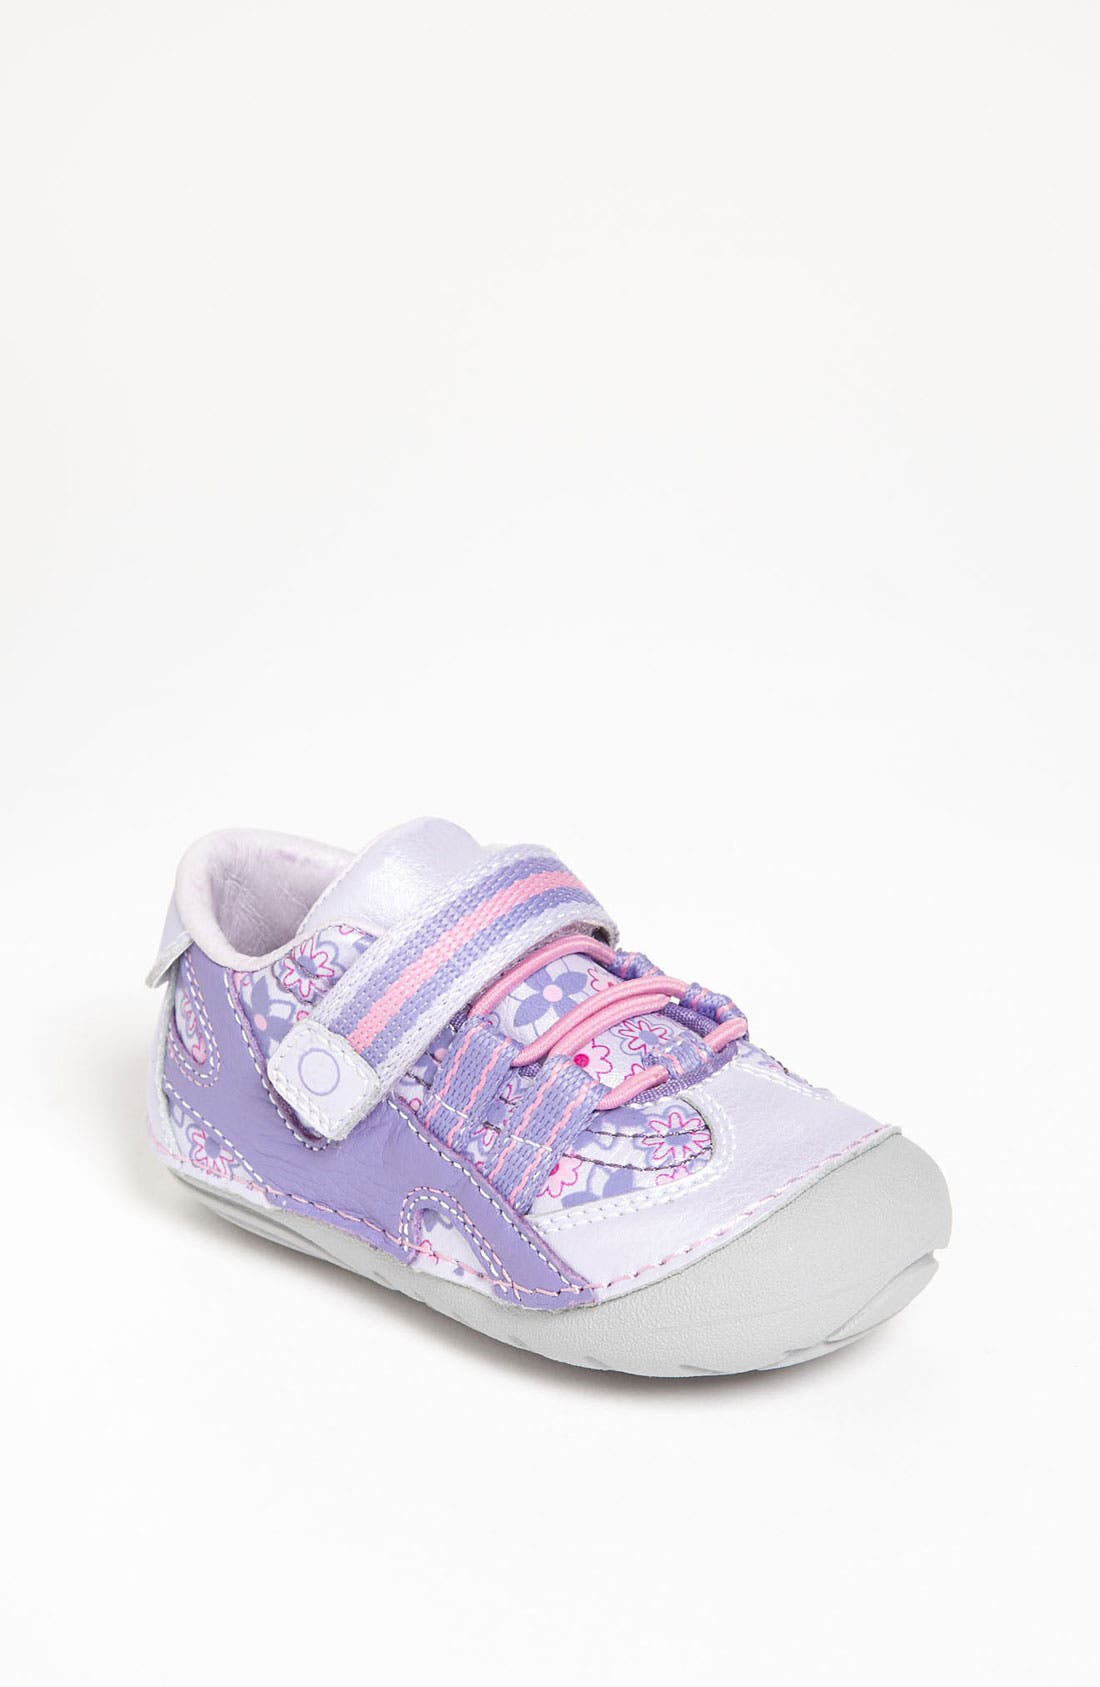 Alternate Image 1 Selected - Stride Rite 'Stephanie' Sneaker (Baby & Walker)